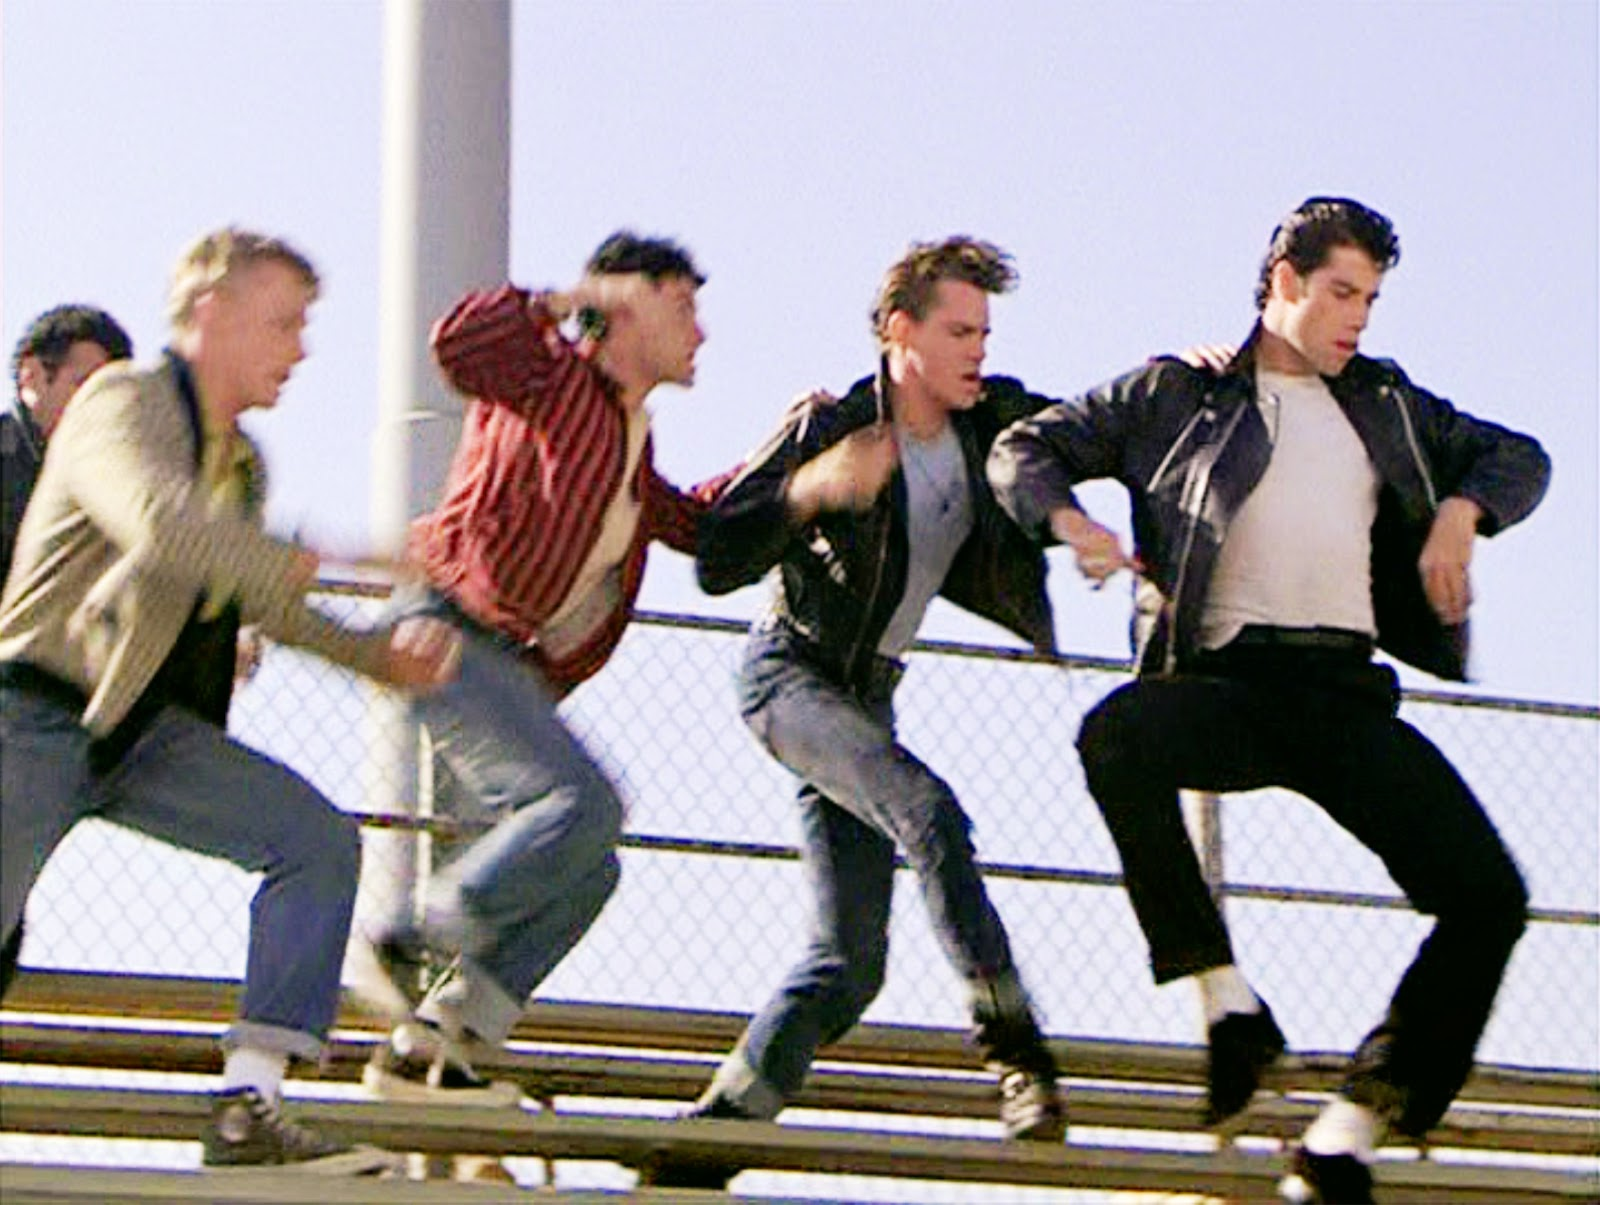 online dating greasers The outsiders quiz - angelfire.